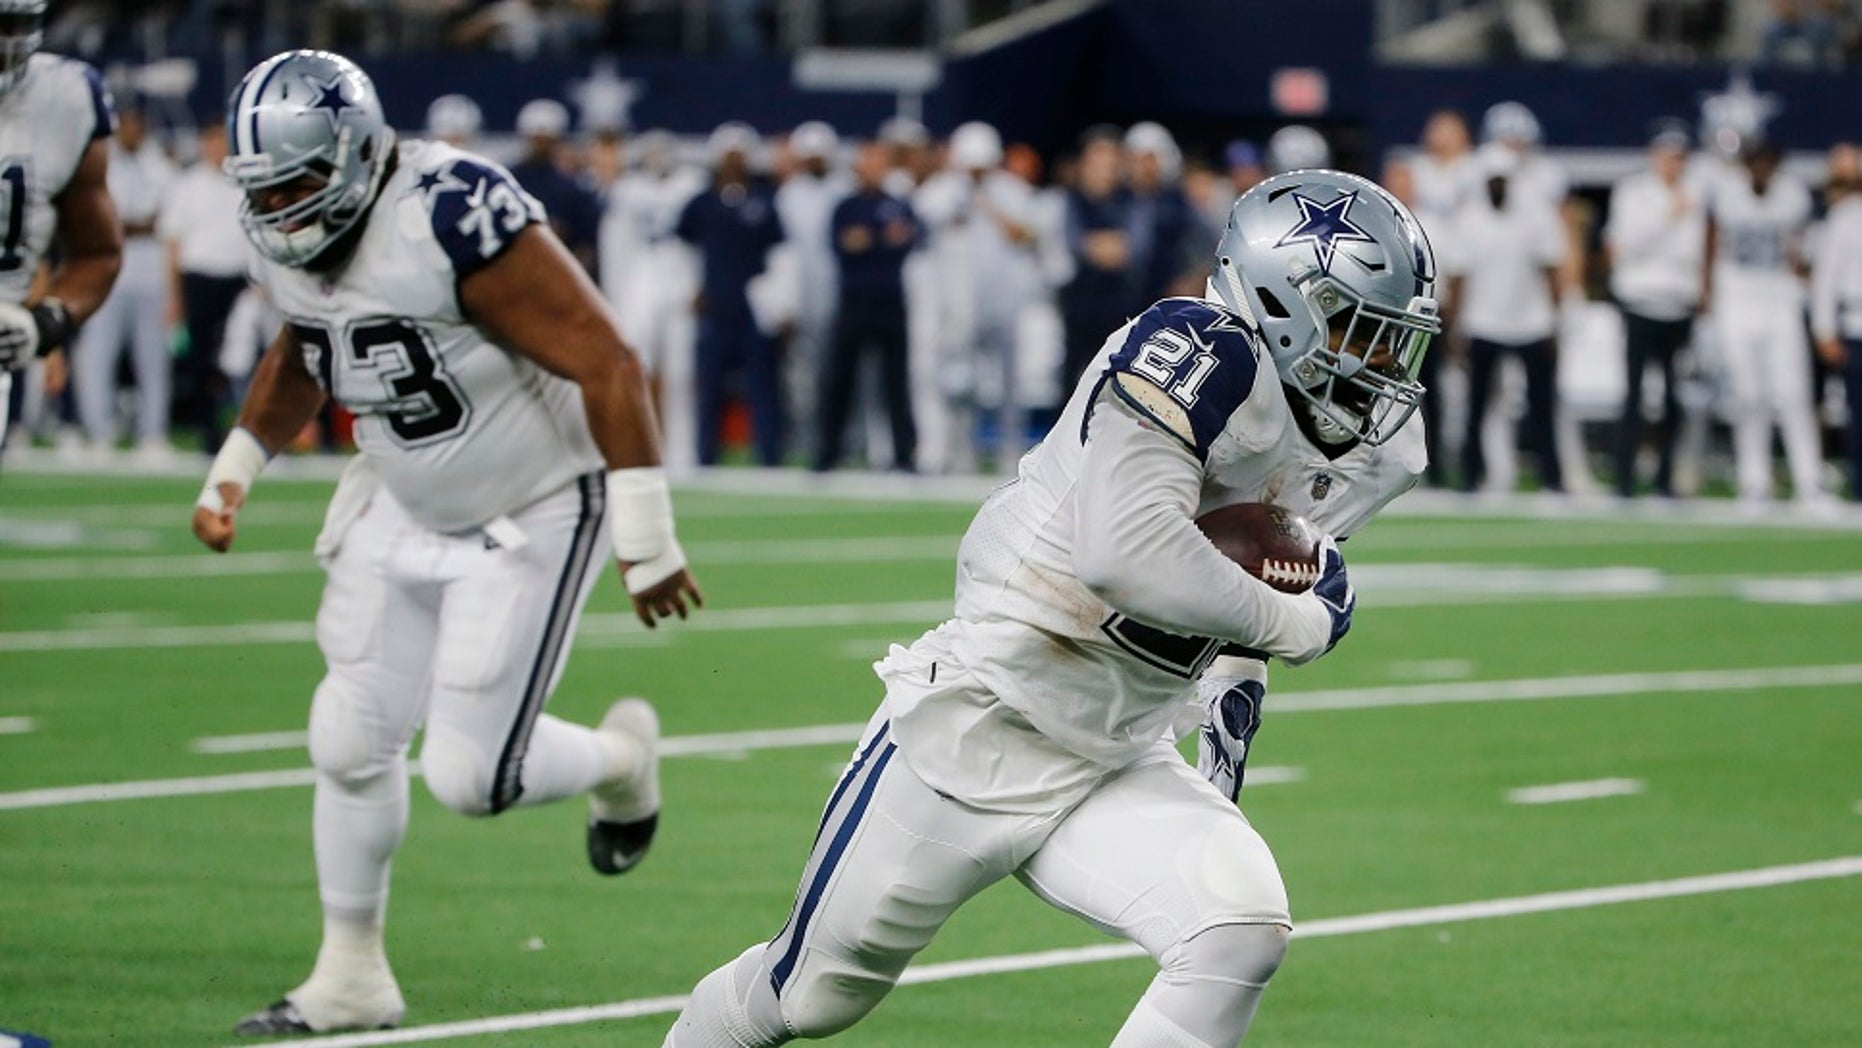 Dallas Cowboys running back Ezekiel Elliott (21) scores a touchdown against the New Orleans Saints in the first half of an NFL football game, in Arlington, Texas, on Thursday, Nov. 29.